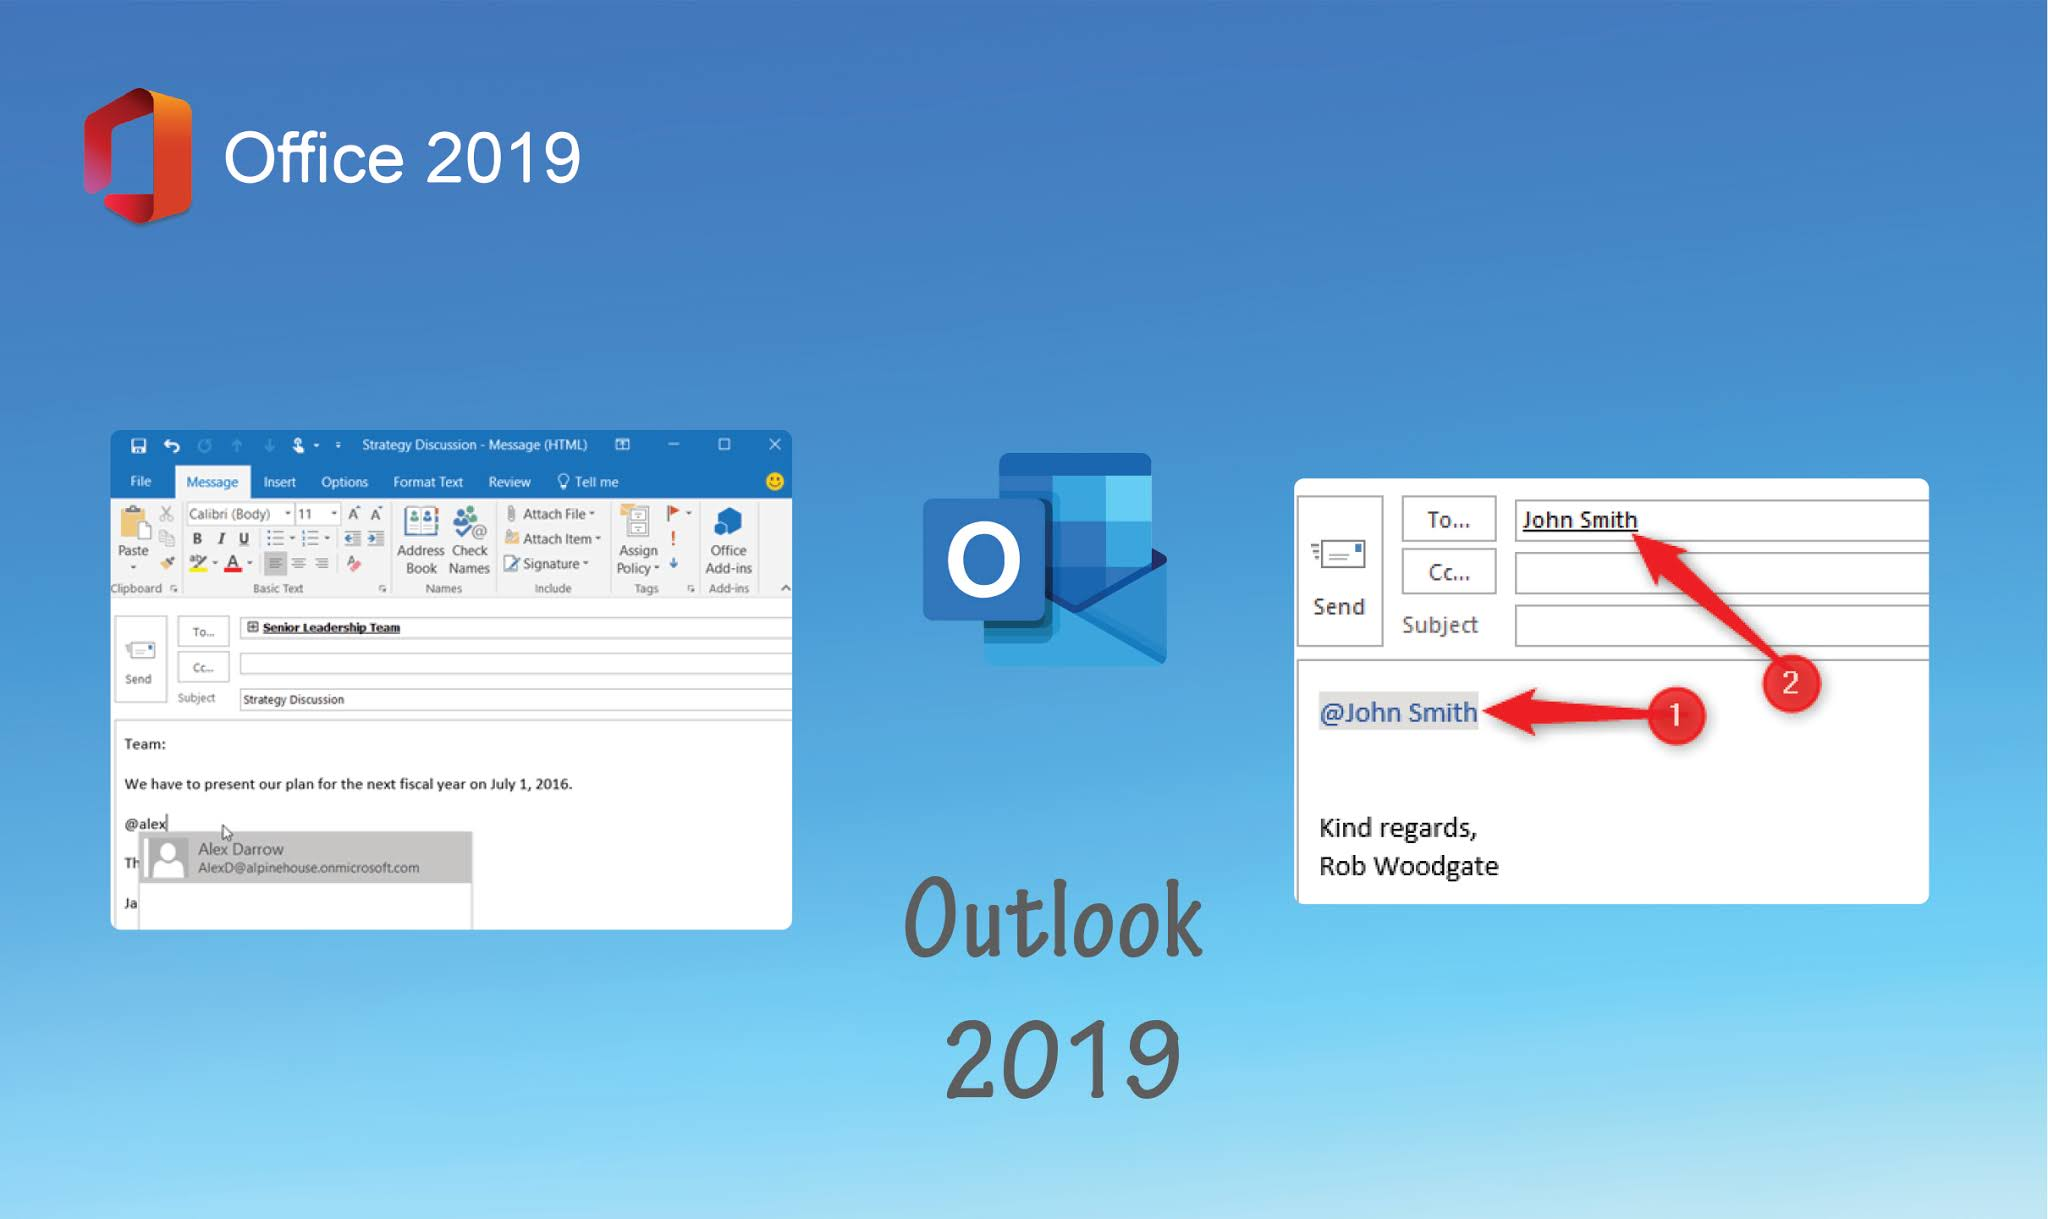 Outlook 2019